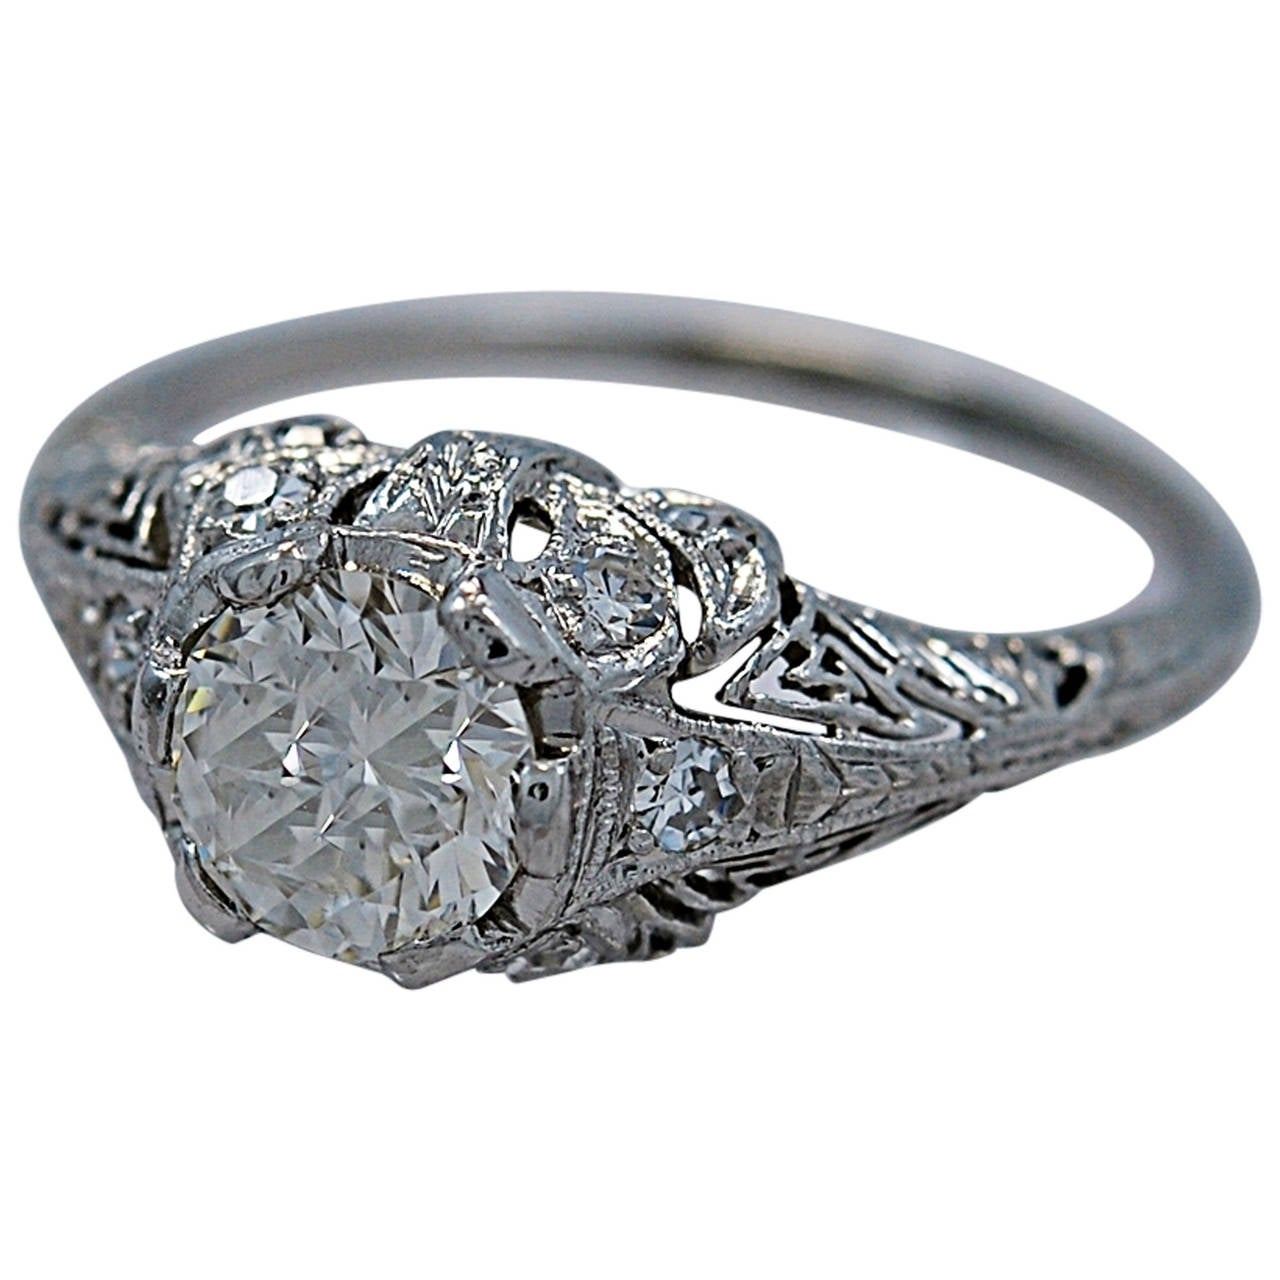 Superb Art Deco Diamond Platinum Engagement Ring 1